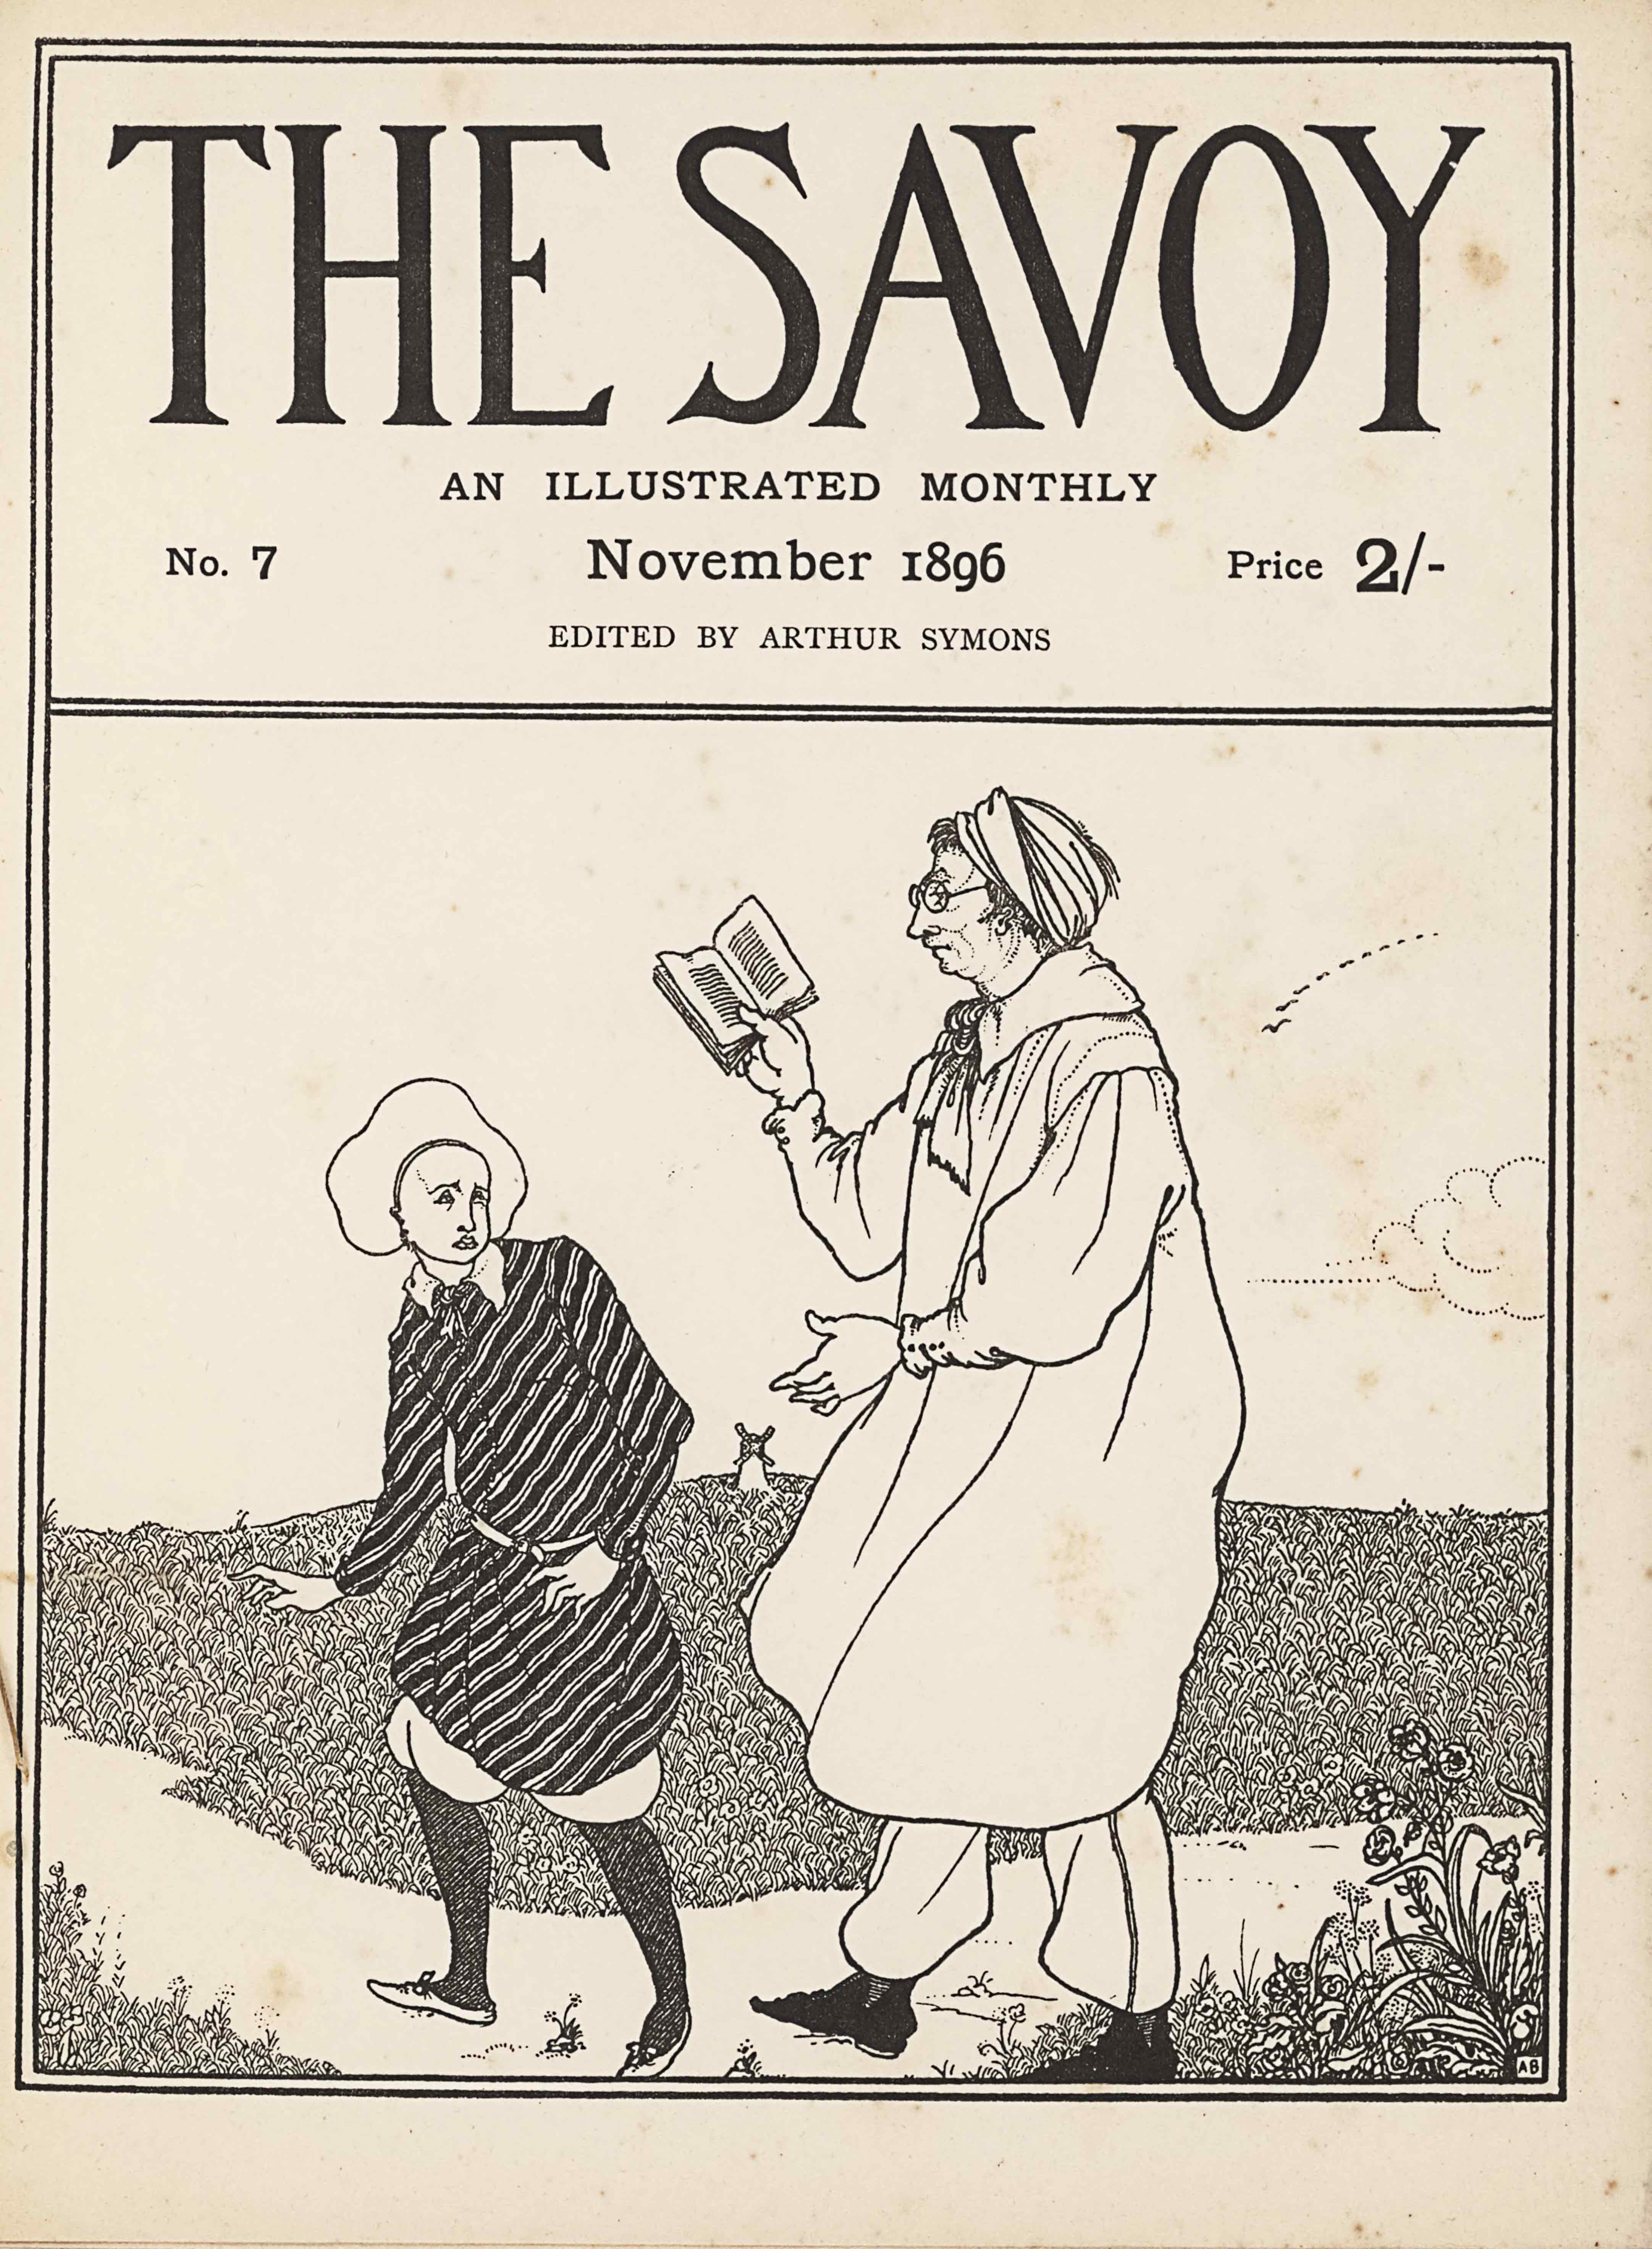 "The double-line framed cover, in portrait orientation, combines a line-block reproduction of a pen-and-ink design with letterpress. Across the top of the page appears the title in display type: ""THE SAVOY"" [large caps]. Below the title is the centred subtitle in a smaller font that reads: ""AN ILLUSTRATED MONTHLY"" [caps]. On the subsequent line below, left aligned, is ""No. 7"". Centred is the date: ""November 1896"" and right aligned is: ""Price 2/-"". On the line below and printed in a lighter font reads: ""EDITED BY ARTHUR SYMONS"" [small caps]. This publishing information takes up the top third of the cover design, within its own bordered section. The illustration below, occupying two-thirds of the cover design, features two central figures on a pathway curving across the foreground with short plants and grasses in front of the path. The figure on the right is a man facing in profile to the left; he is almost the height of the illustration section of the cover. He stands midstep with his left elbow at his side and his left hand stretched out before him. His right hand is raised to eye-level and in it, he holds an open book. He is wearing a wrap or turban around his head with his hair sticking out the front and back. He is wearing round glasses and has an ascot tied about his neck. His white smock extends just beyond his knees. His white pants are tucked into his back shoes. To his left on the path is a smaller, Pierrot figure, turning back to look up at the first man. Pierrot stands at shoulder height to the first figure. Pierrot has a downturned mouth and downturned eyes. He is wearing a striped tunic that extends to his knees with a thin white belt tied around his waist. The bottoms of his breeches are tucked into knee-length black socks and he has white shoes. Stretching out past the pathway, in the background, is a field that rises to a horizon a third of the way up the page. At the horizon's edge, centred in the middle ground, stands a four-bladed windmill. The sky is clear other than a few birds in a curving line and a cloud on the right edge. In the foreground on the path stand two figures. Aubrey Beardsley's initials ""AB"" [caps] are featured in a white box in the bottom right corner of the image."